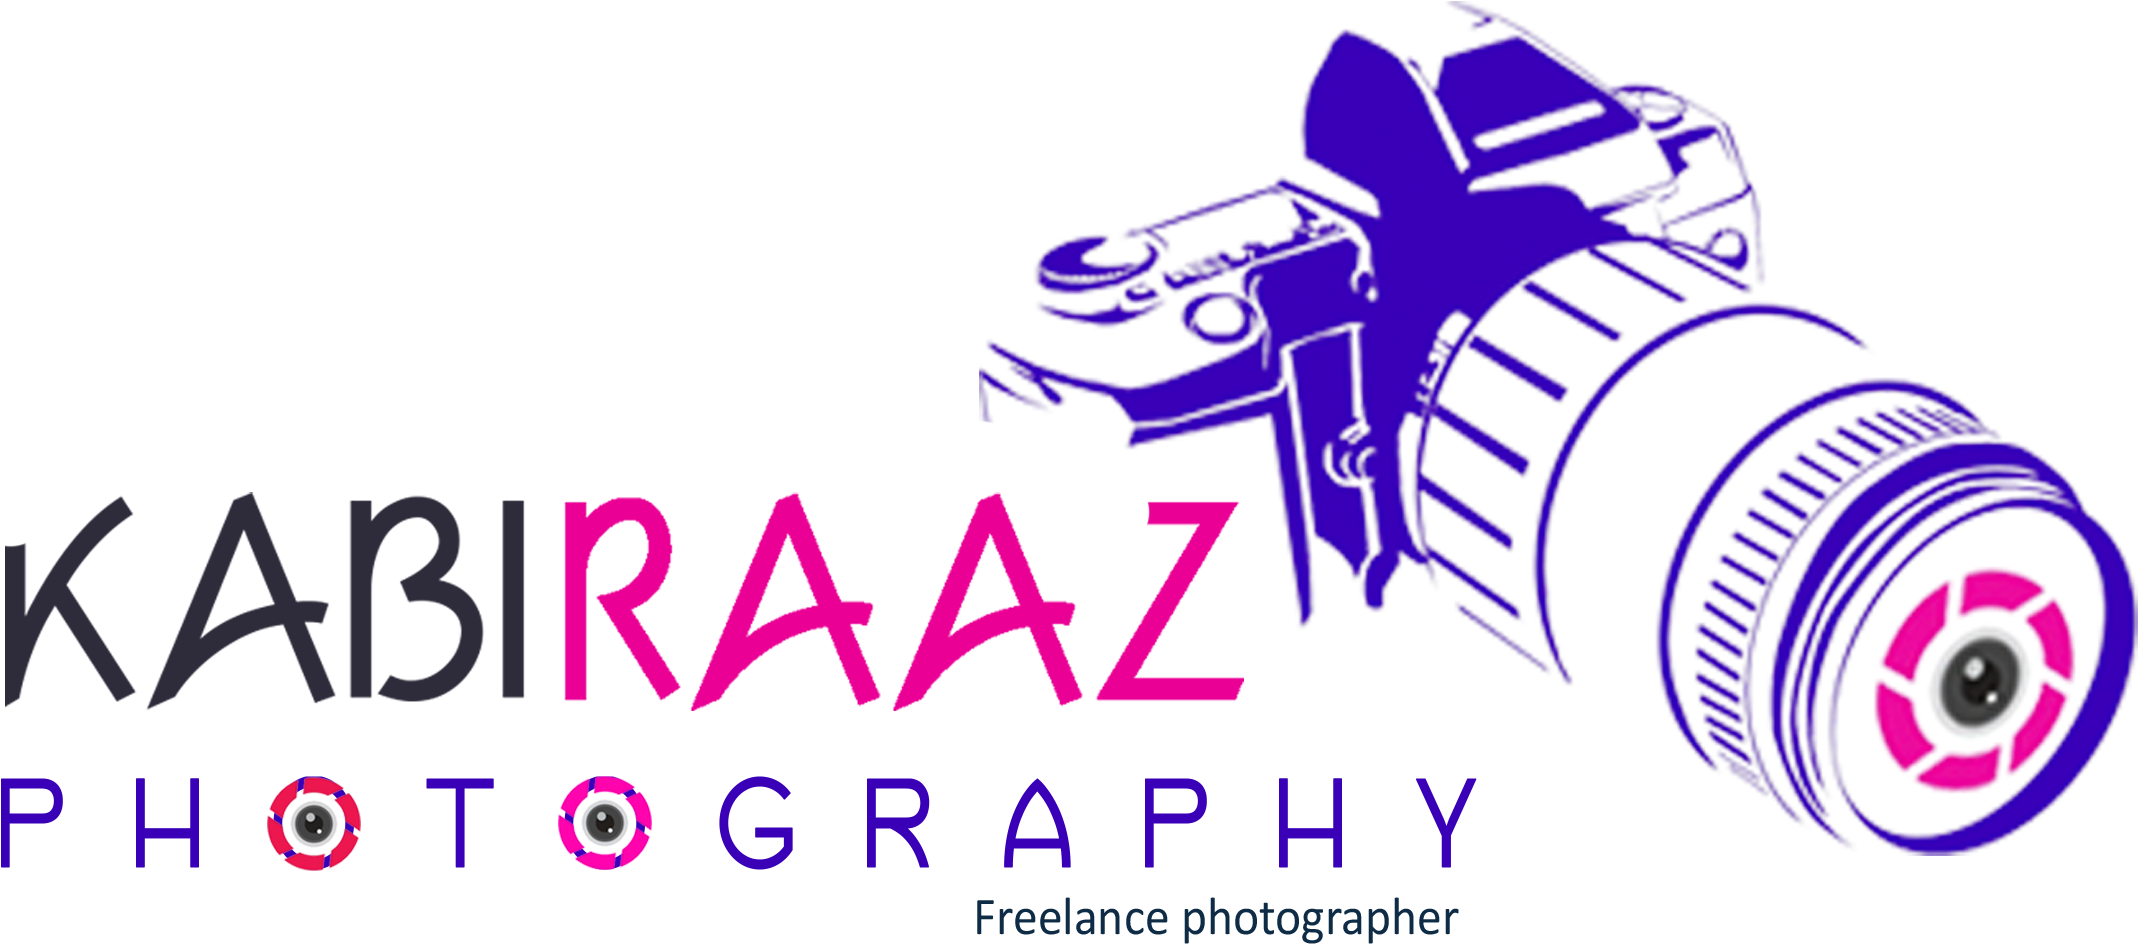 Download Kabiraaz Photography Logo Dslr Camera Logo Png Png Image With No Background Pngkey Com